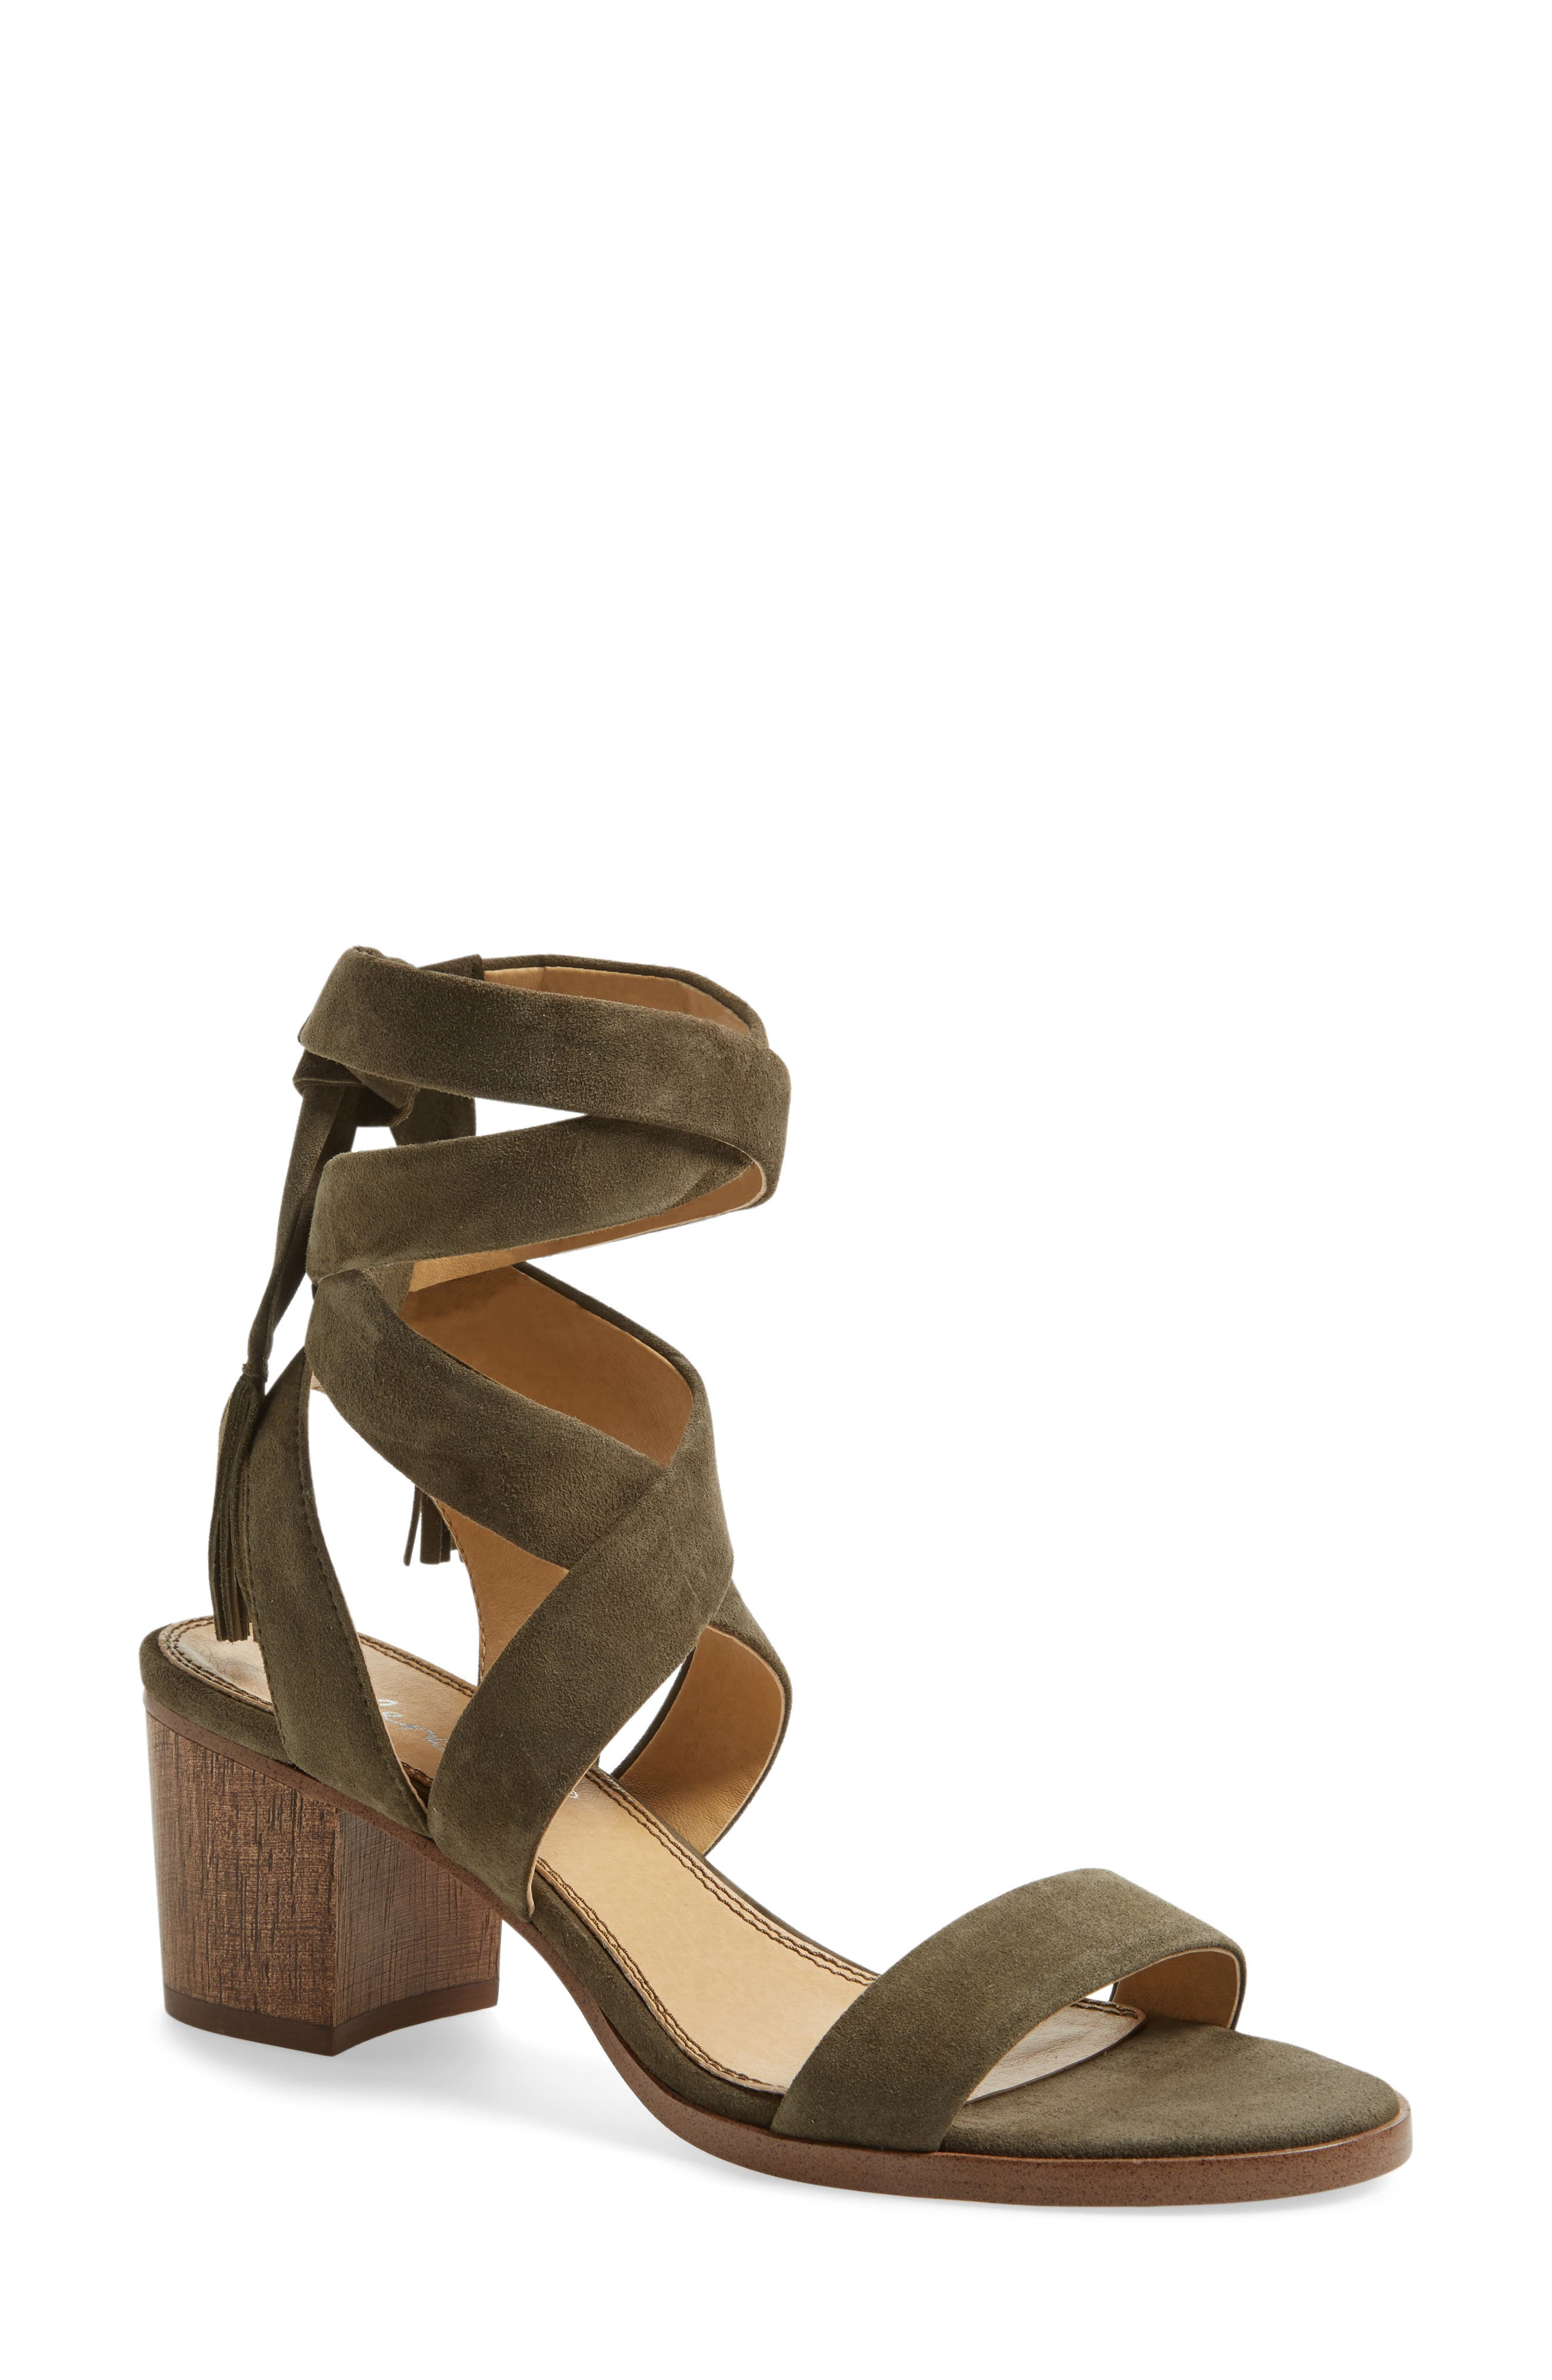 Alternate Image 1 Selected - Splendid Janet Block Heel Sandal (Women)